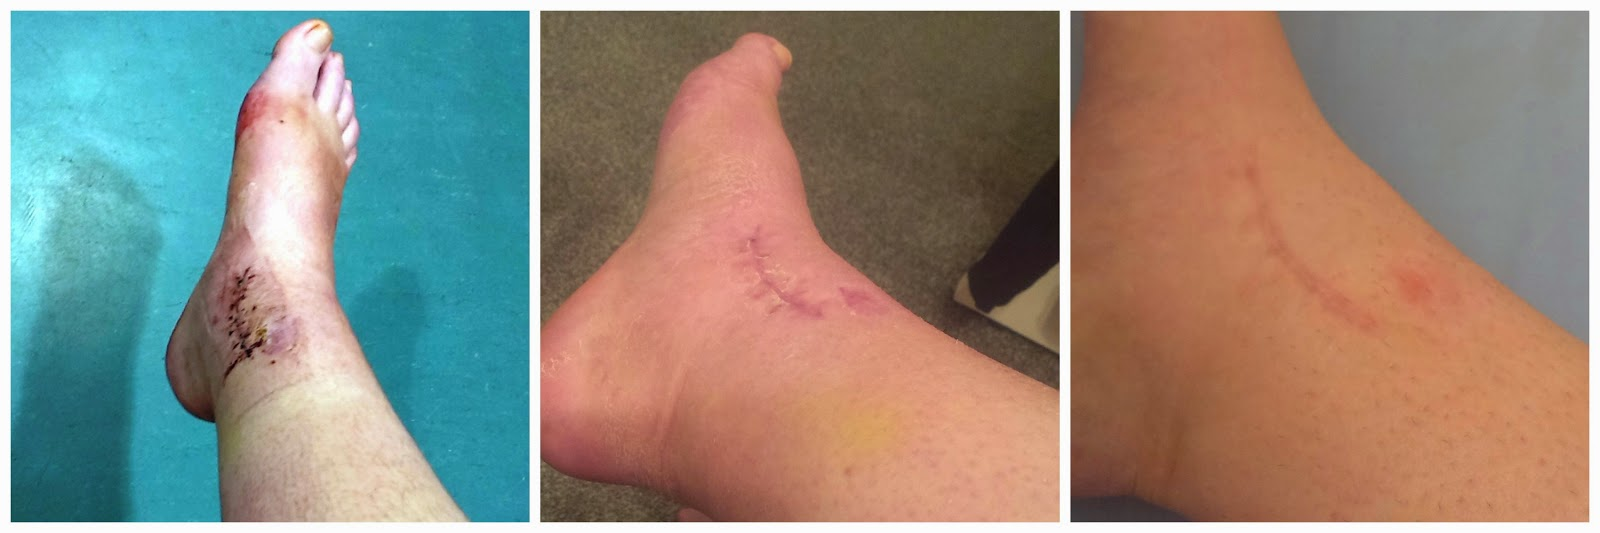 The healing process of the scar on the left side of my ankle